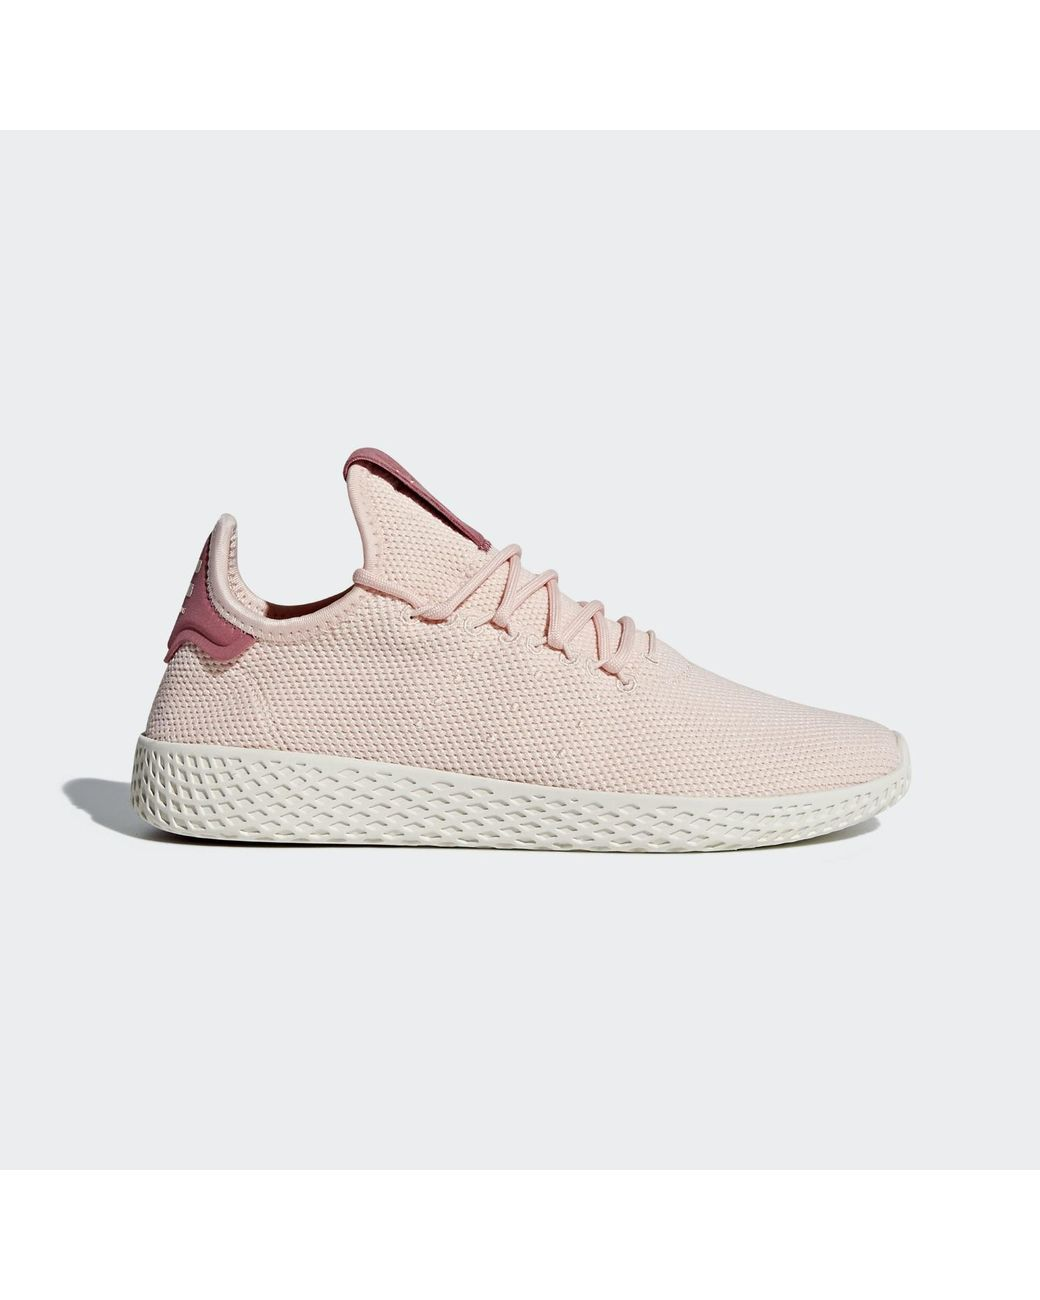 29d740e8e546c Lyst - adidas Pharrell Williams Tennis Hu Sneaker in Pink - Save 29%